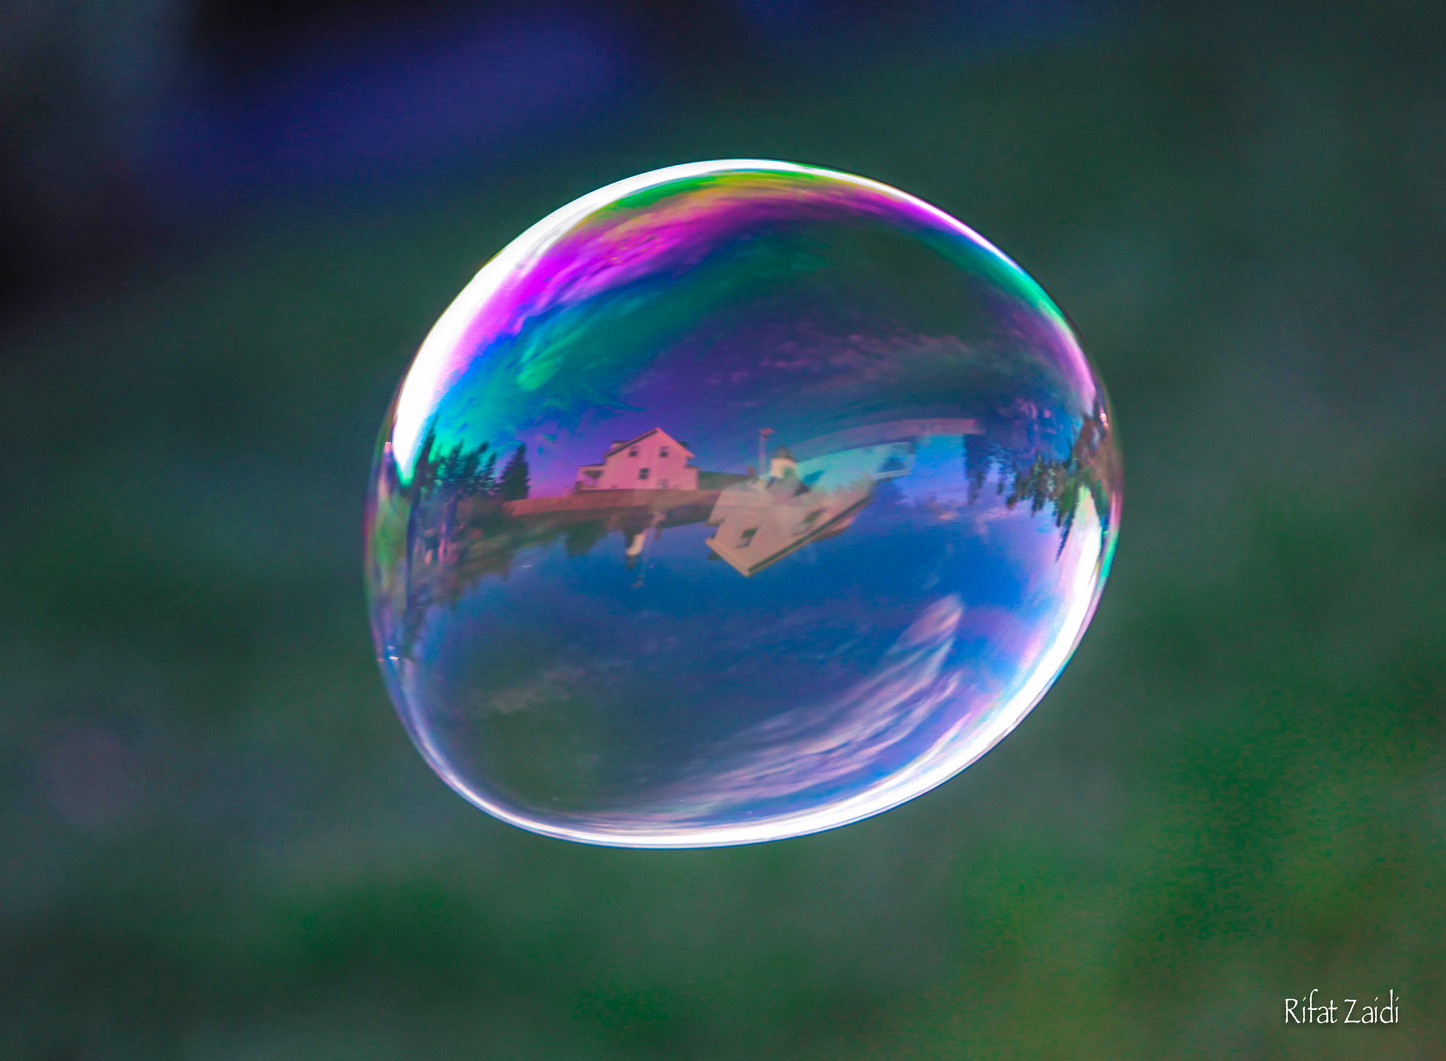 Lighthouse in a bubble